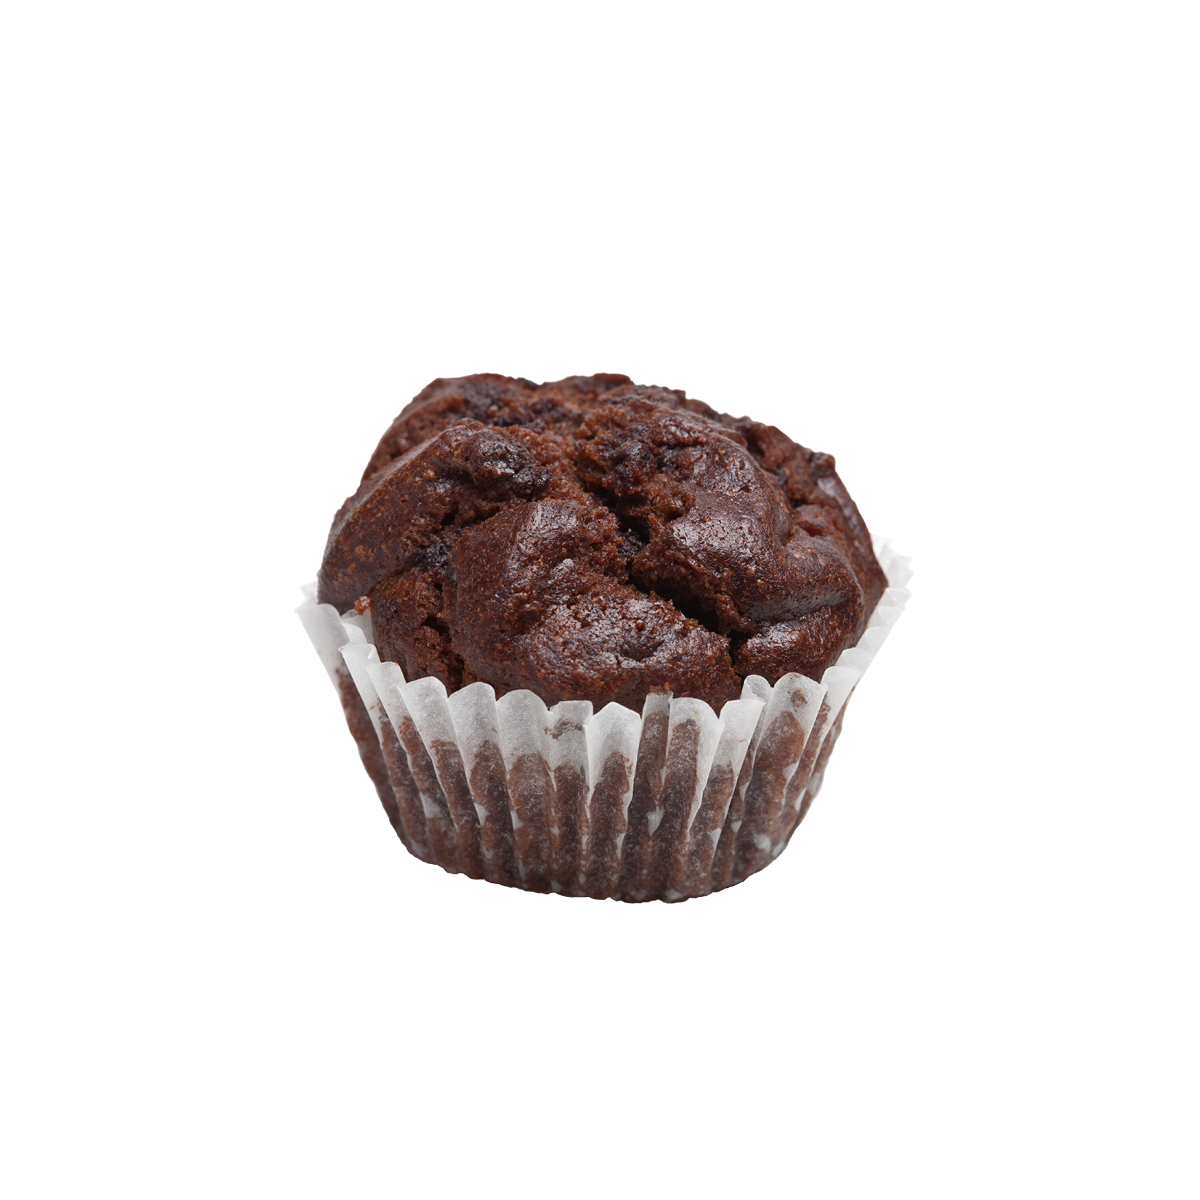 uploads muffin muffin PNG190 4